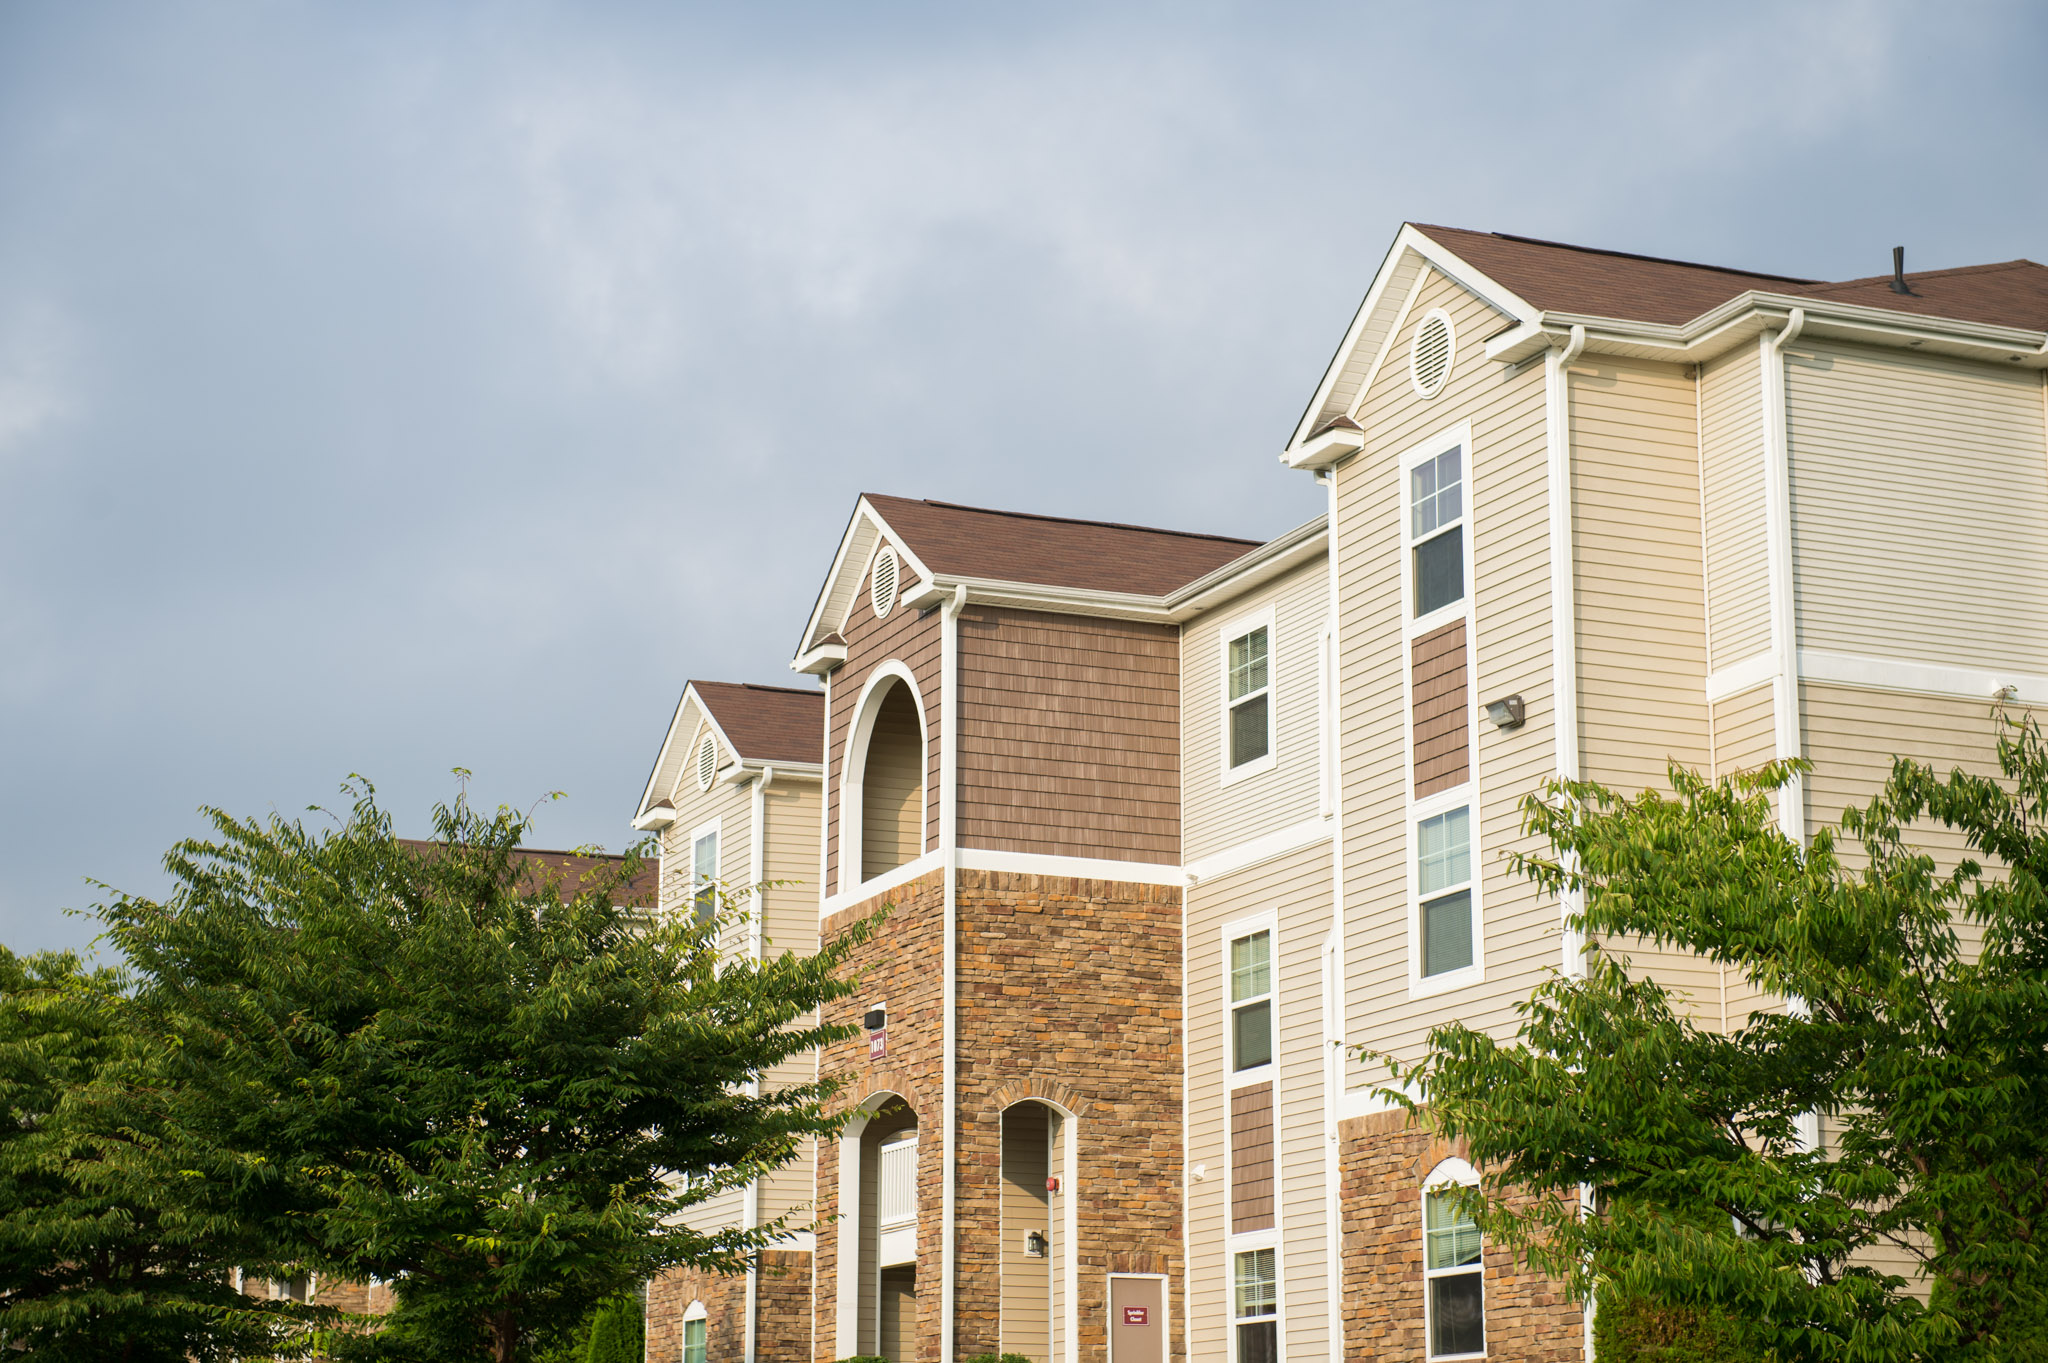 North 38 Exteriors for Web-1055.jpg